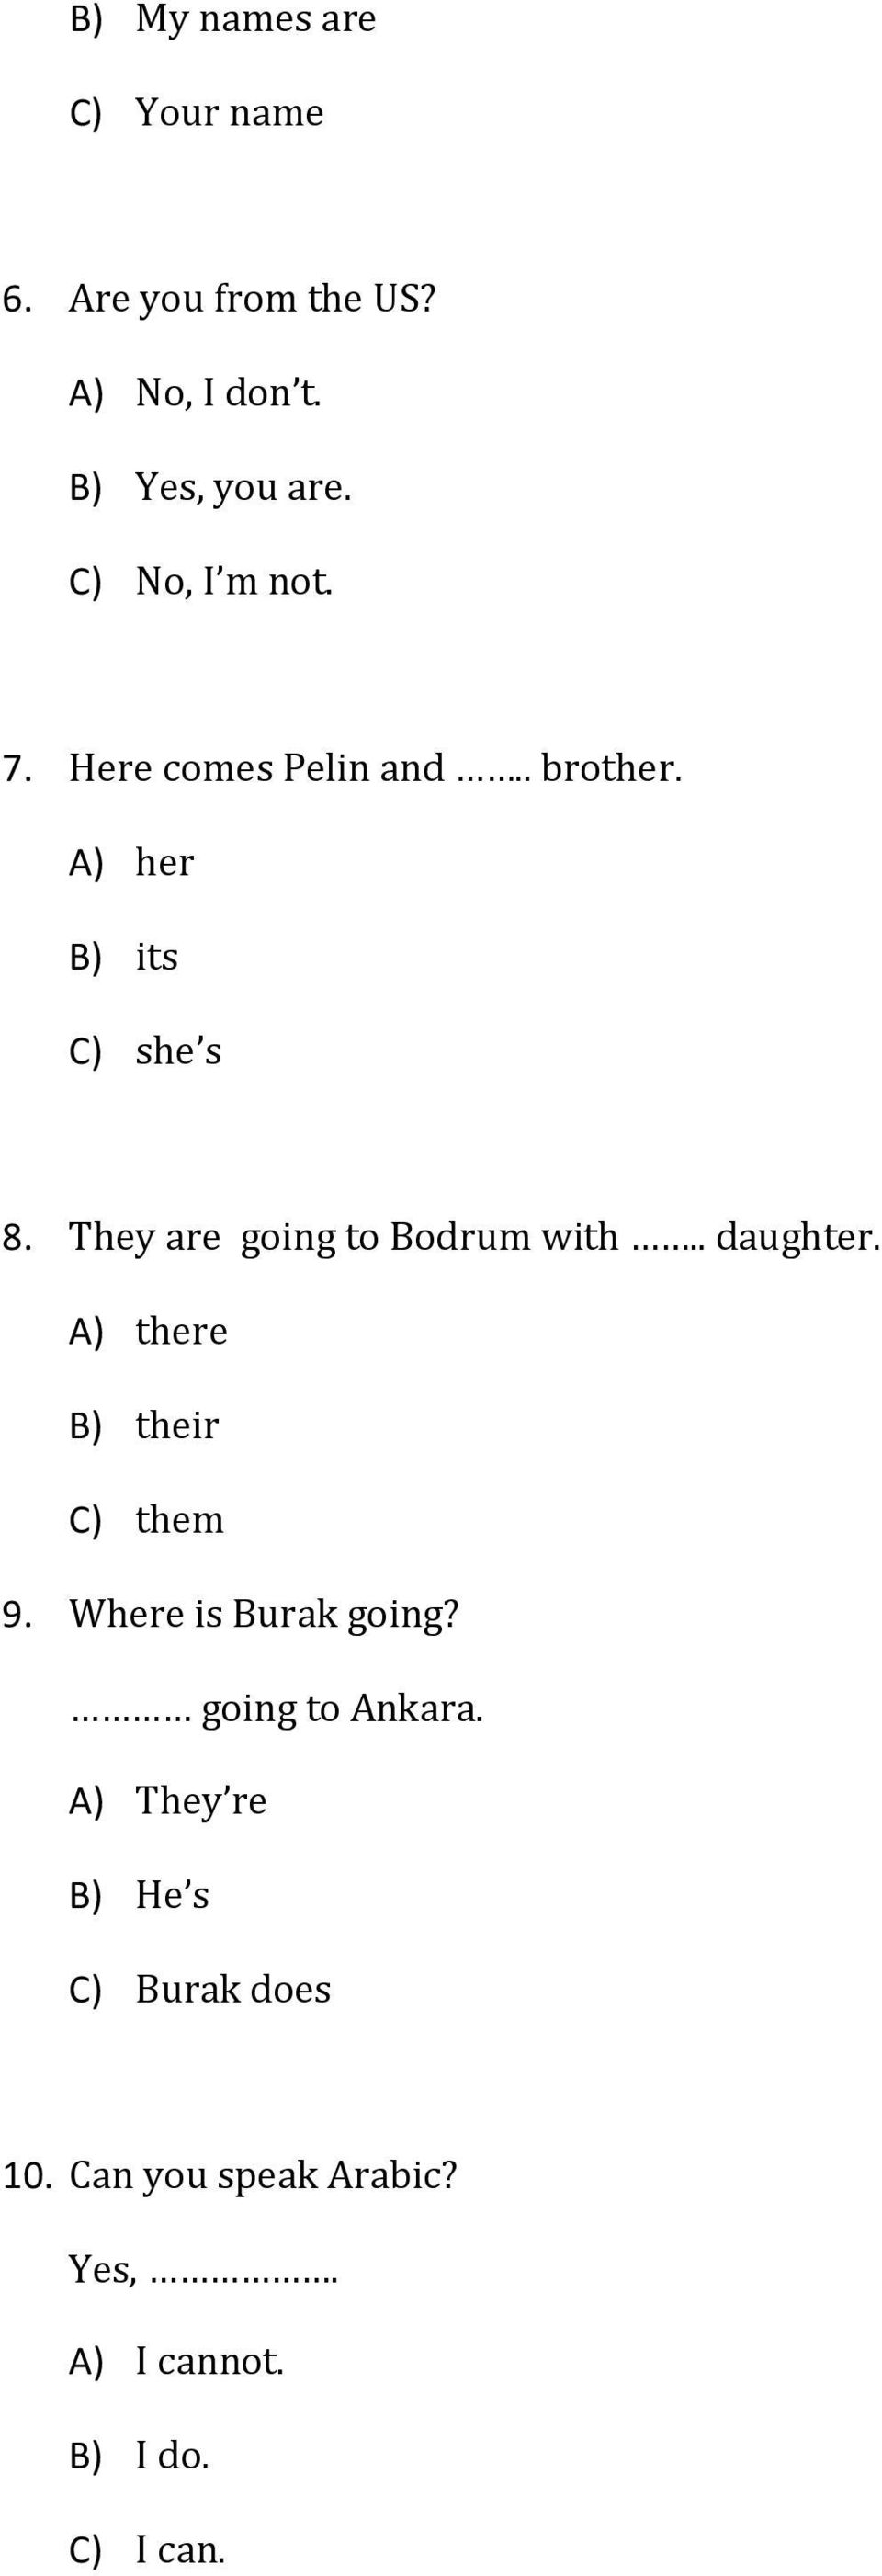 They are going to Bodrum with.. daughter. A) there B) their C) them 9. Where is Burak going?